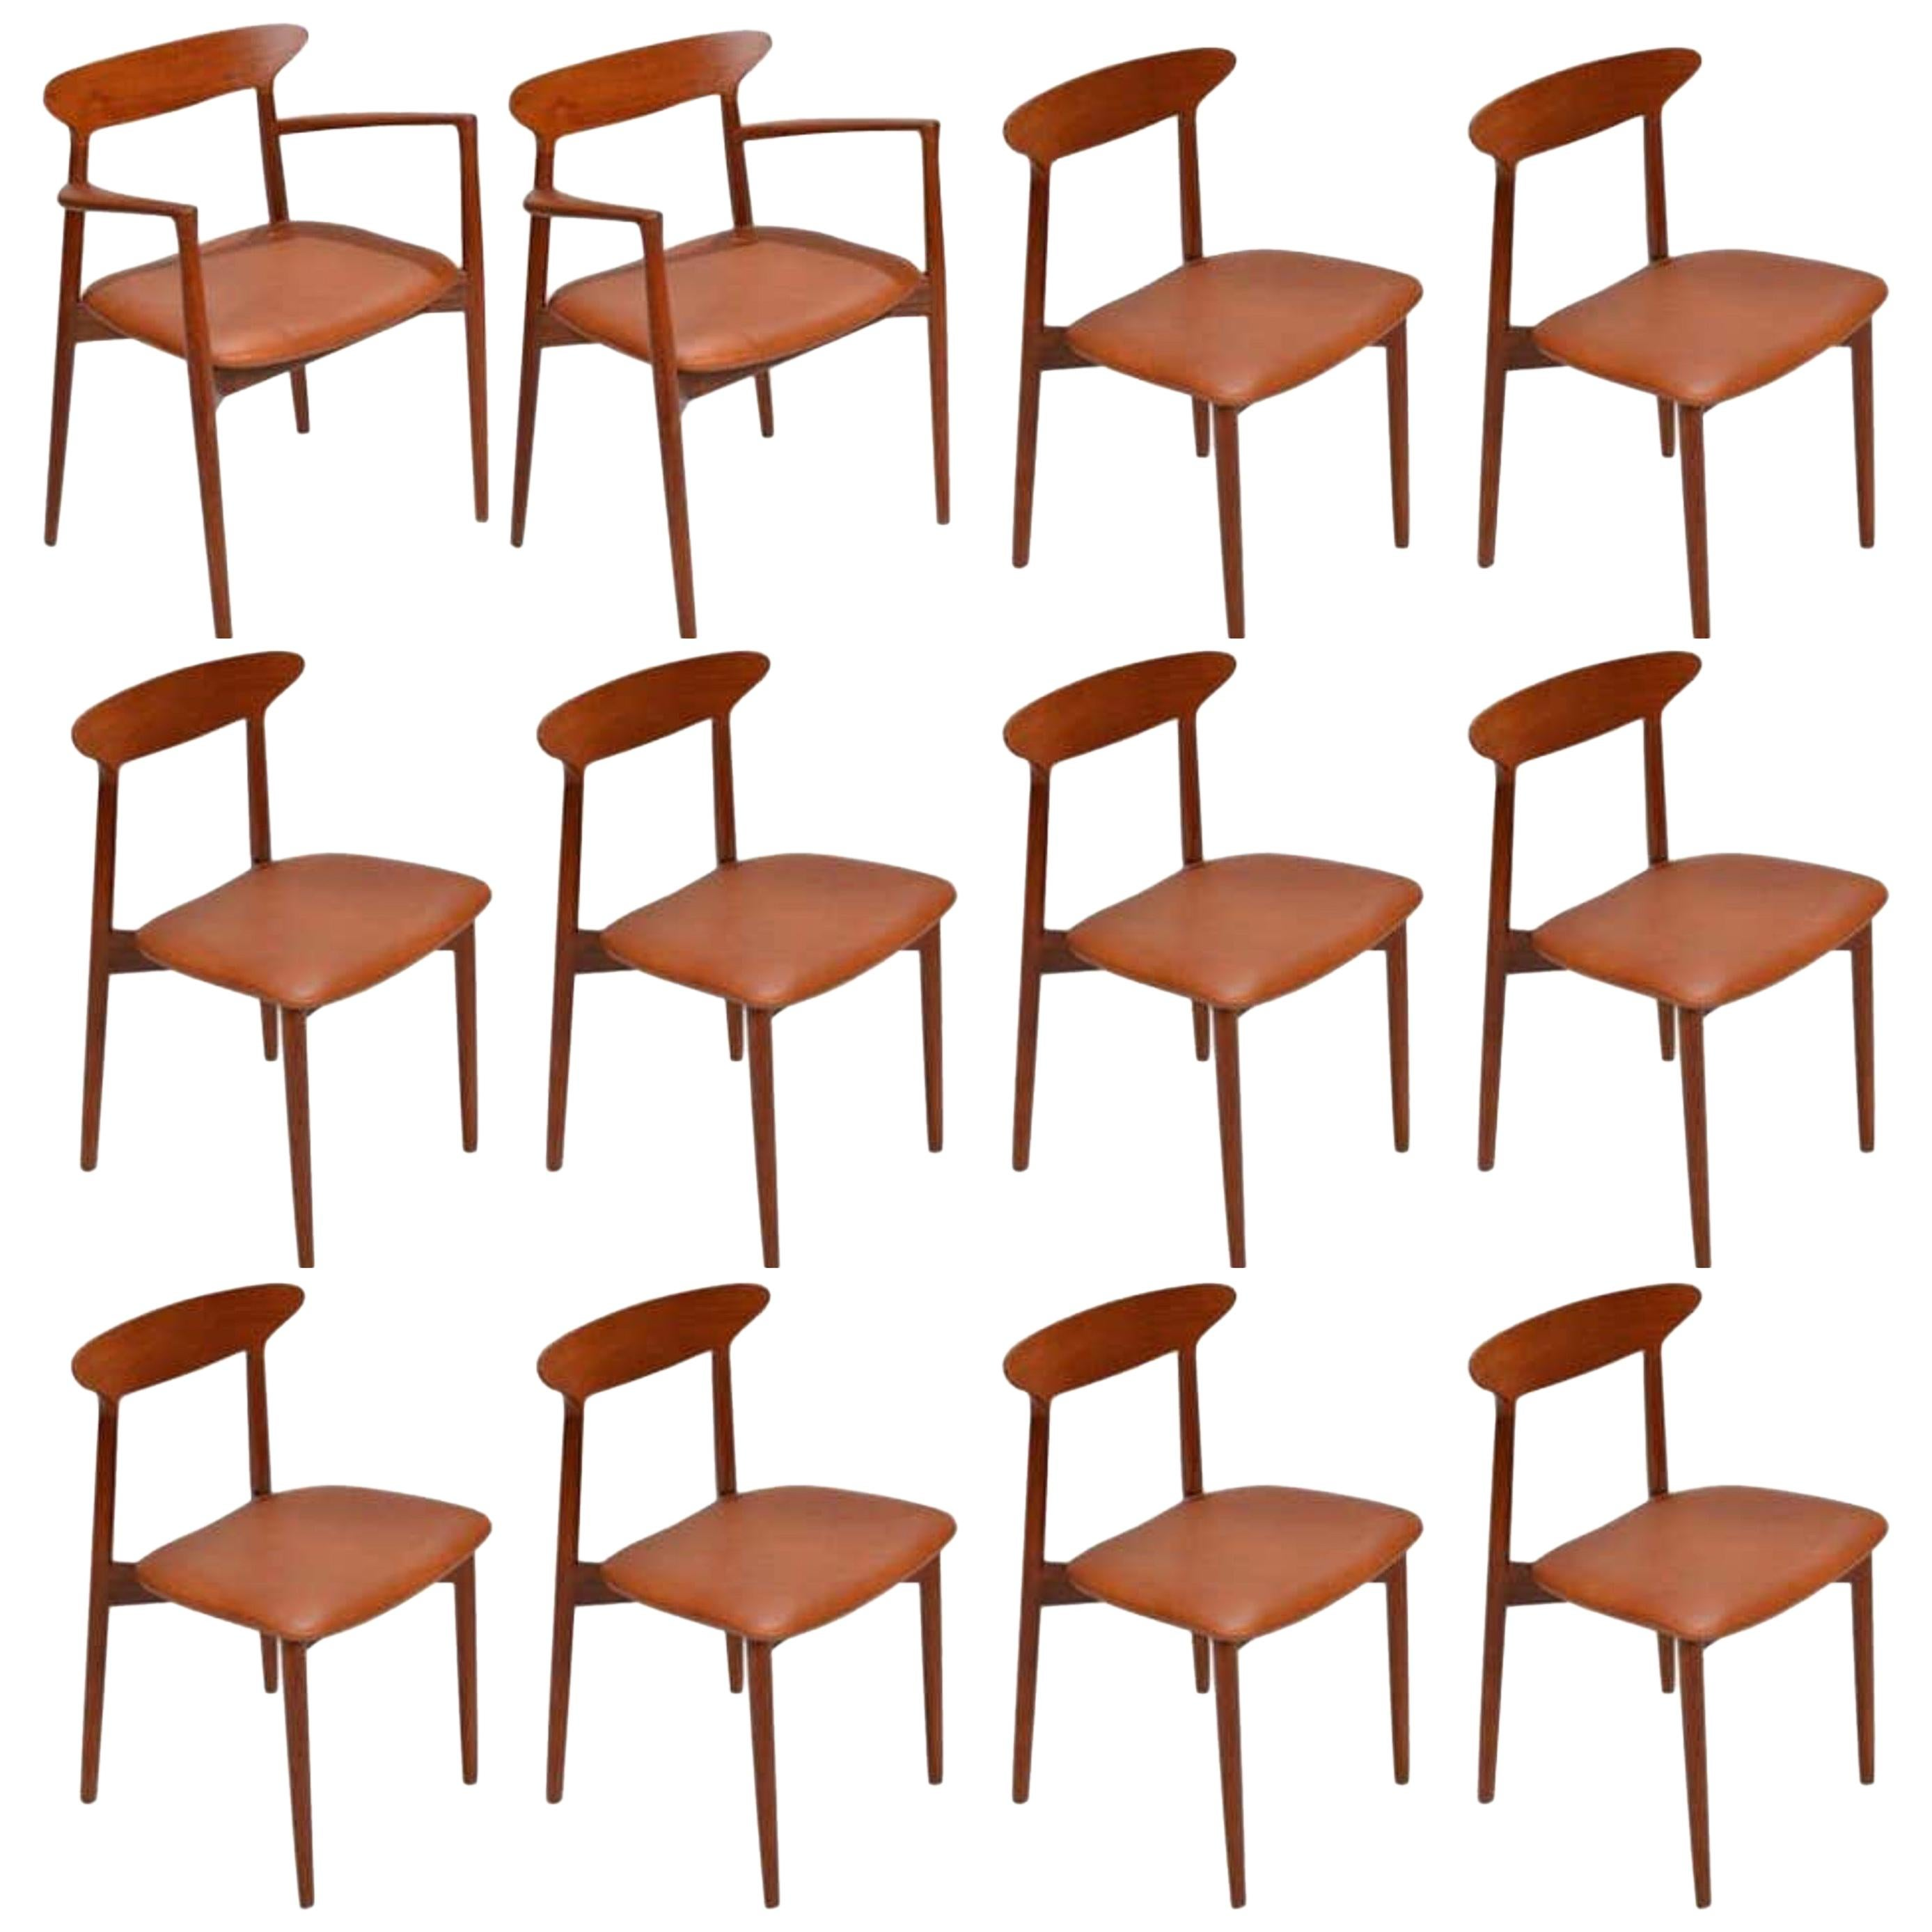 Set of 12 Teak Dining Chairs by Harry Østergaard for Randers Møbelfabrik